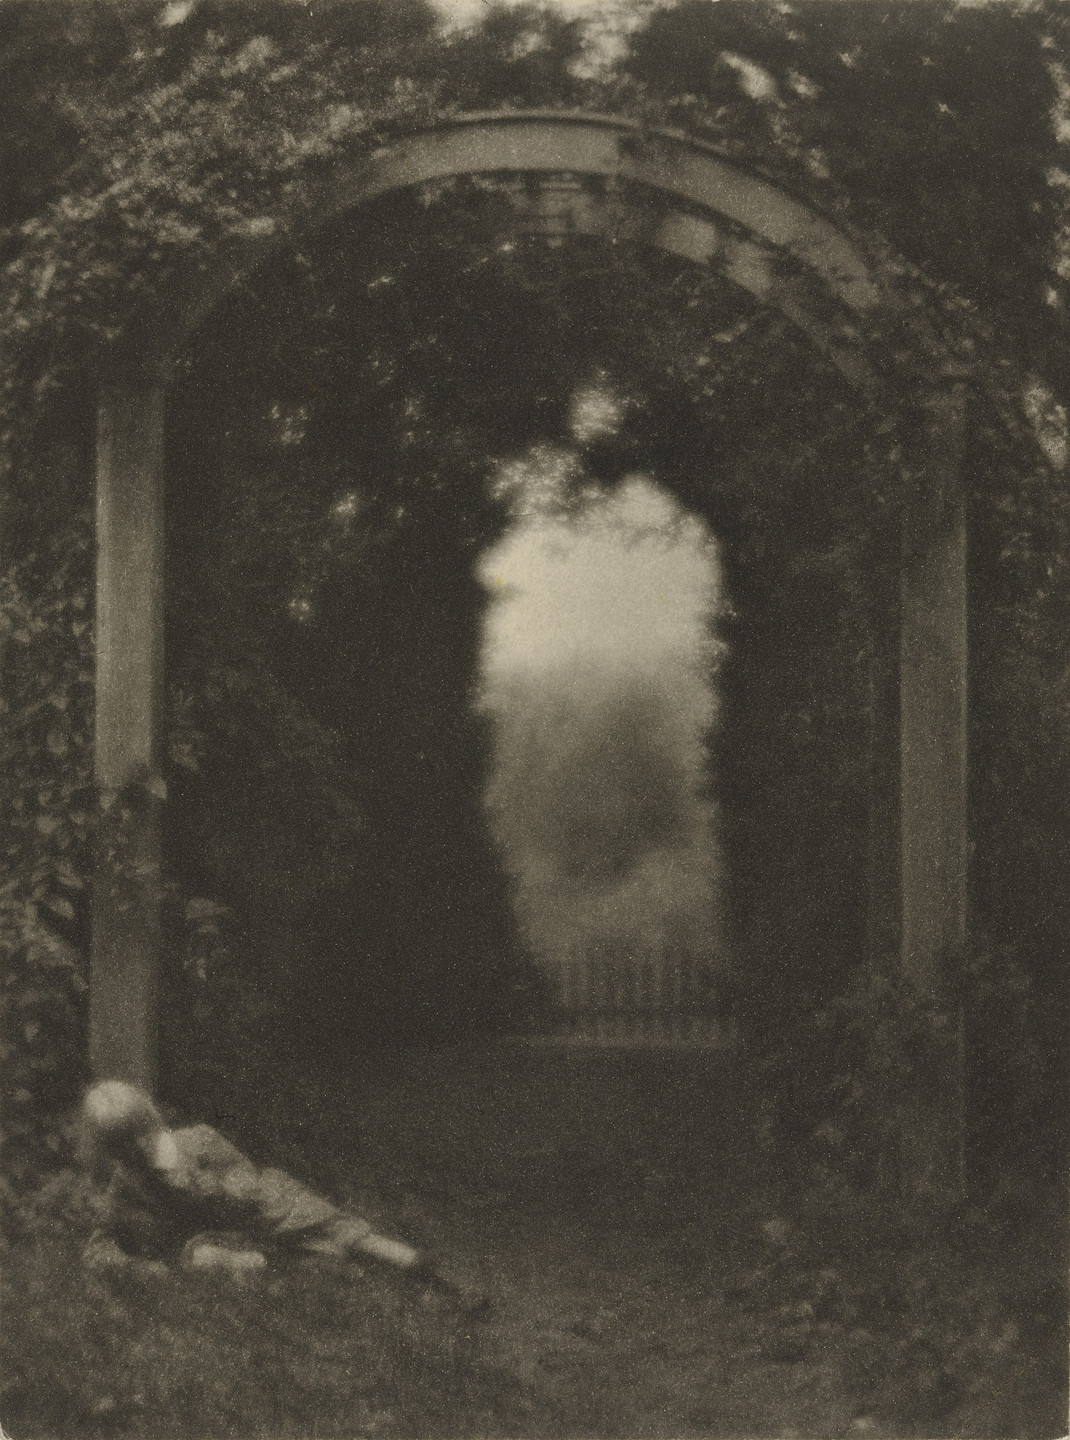 Clarence H. White. Entrance to the Garden. 1906